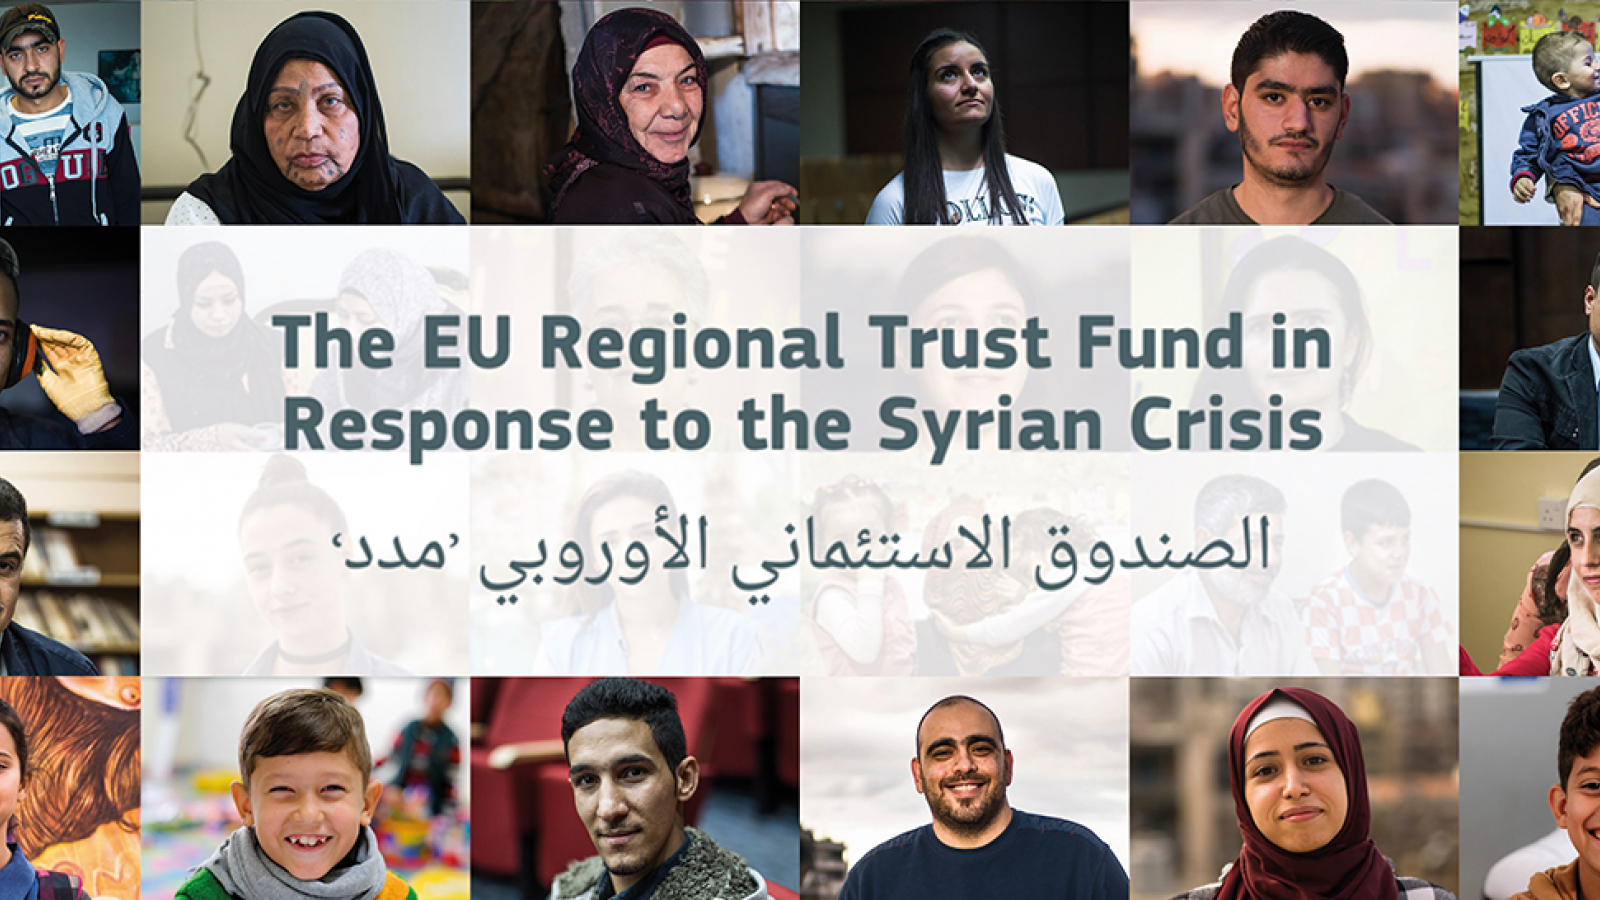 ©EU Regional Trust Fund in Response to the Syrian Crisis